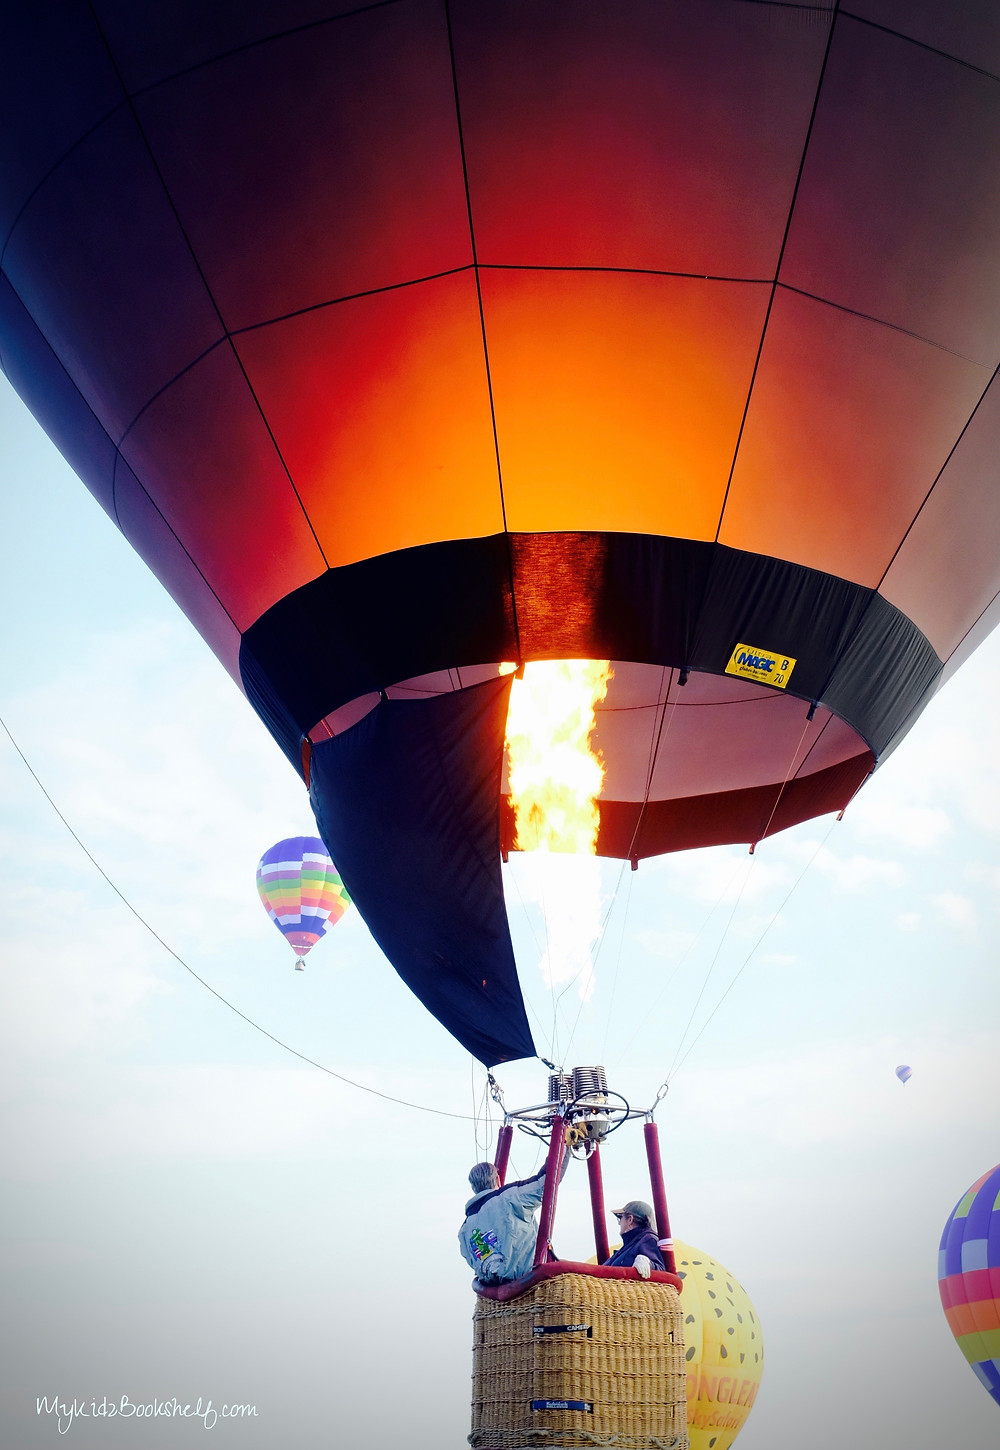 hot-air-balloon-being-filled-up-with-flame-showing